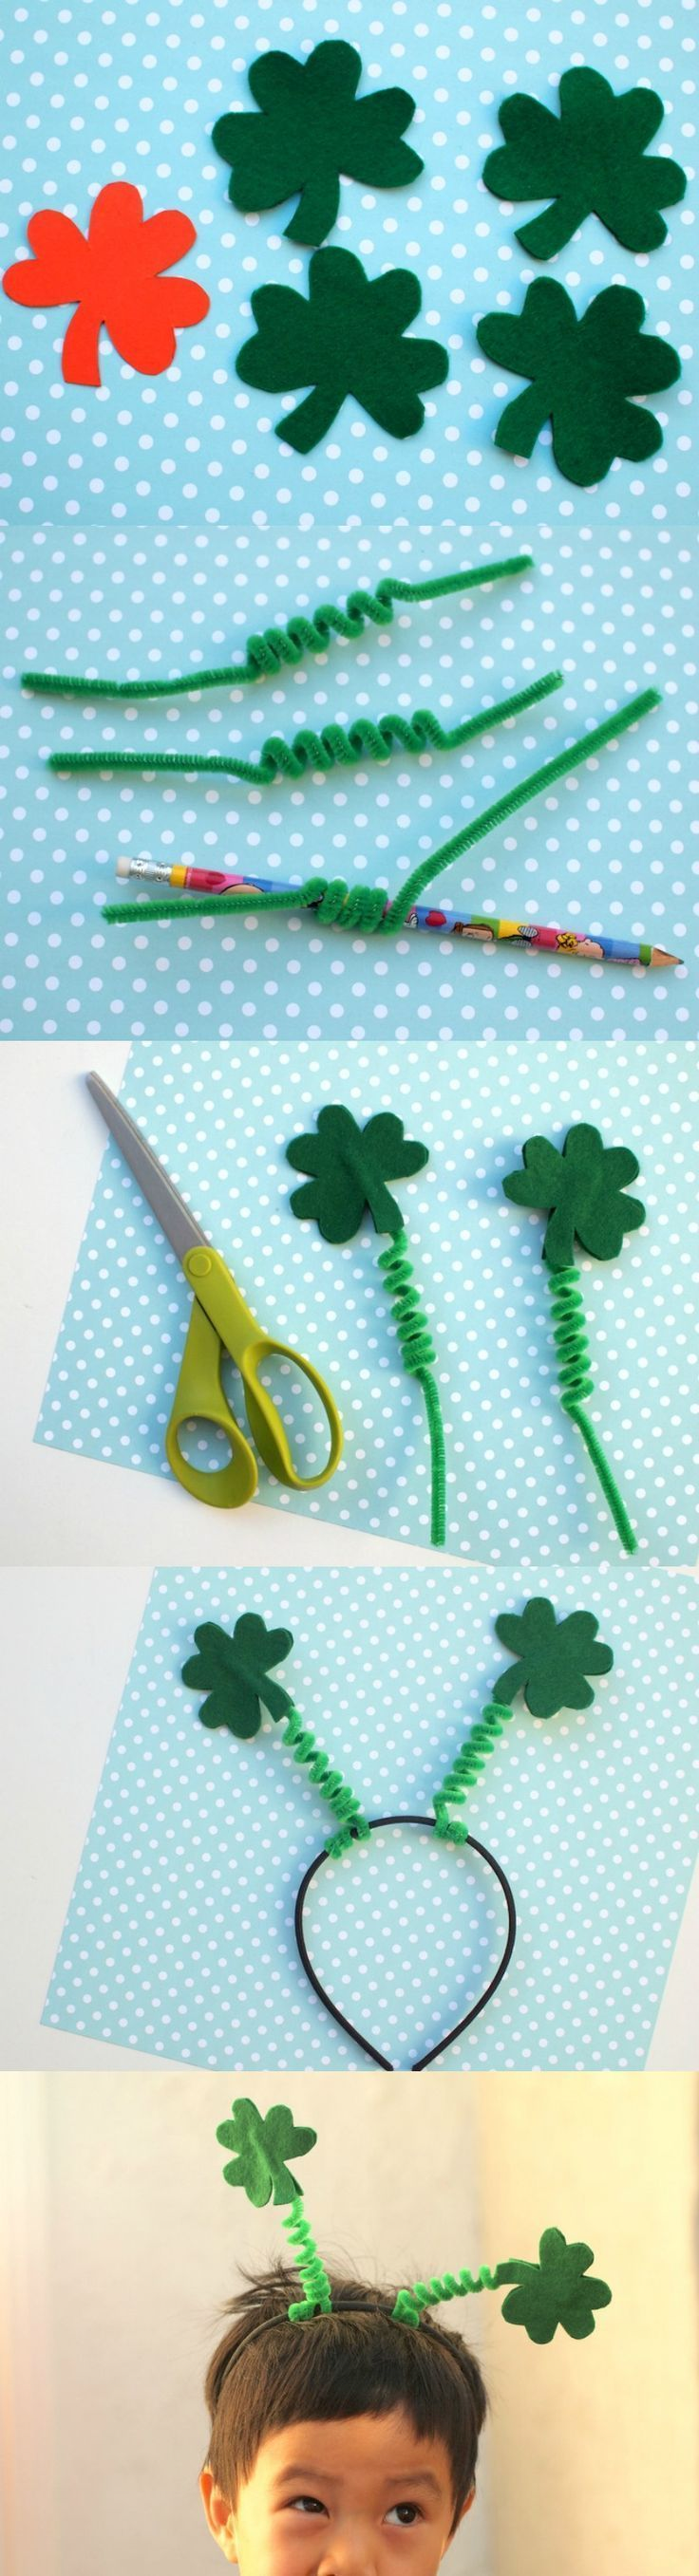 St. Patrick's Day is right around the corner; celebrate with this unique shamrock craft! Kids will love making and wearing this fun and festive headband.